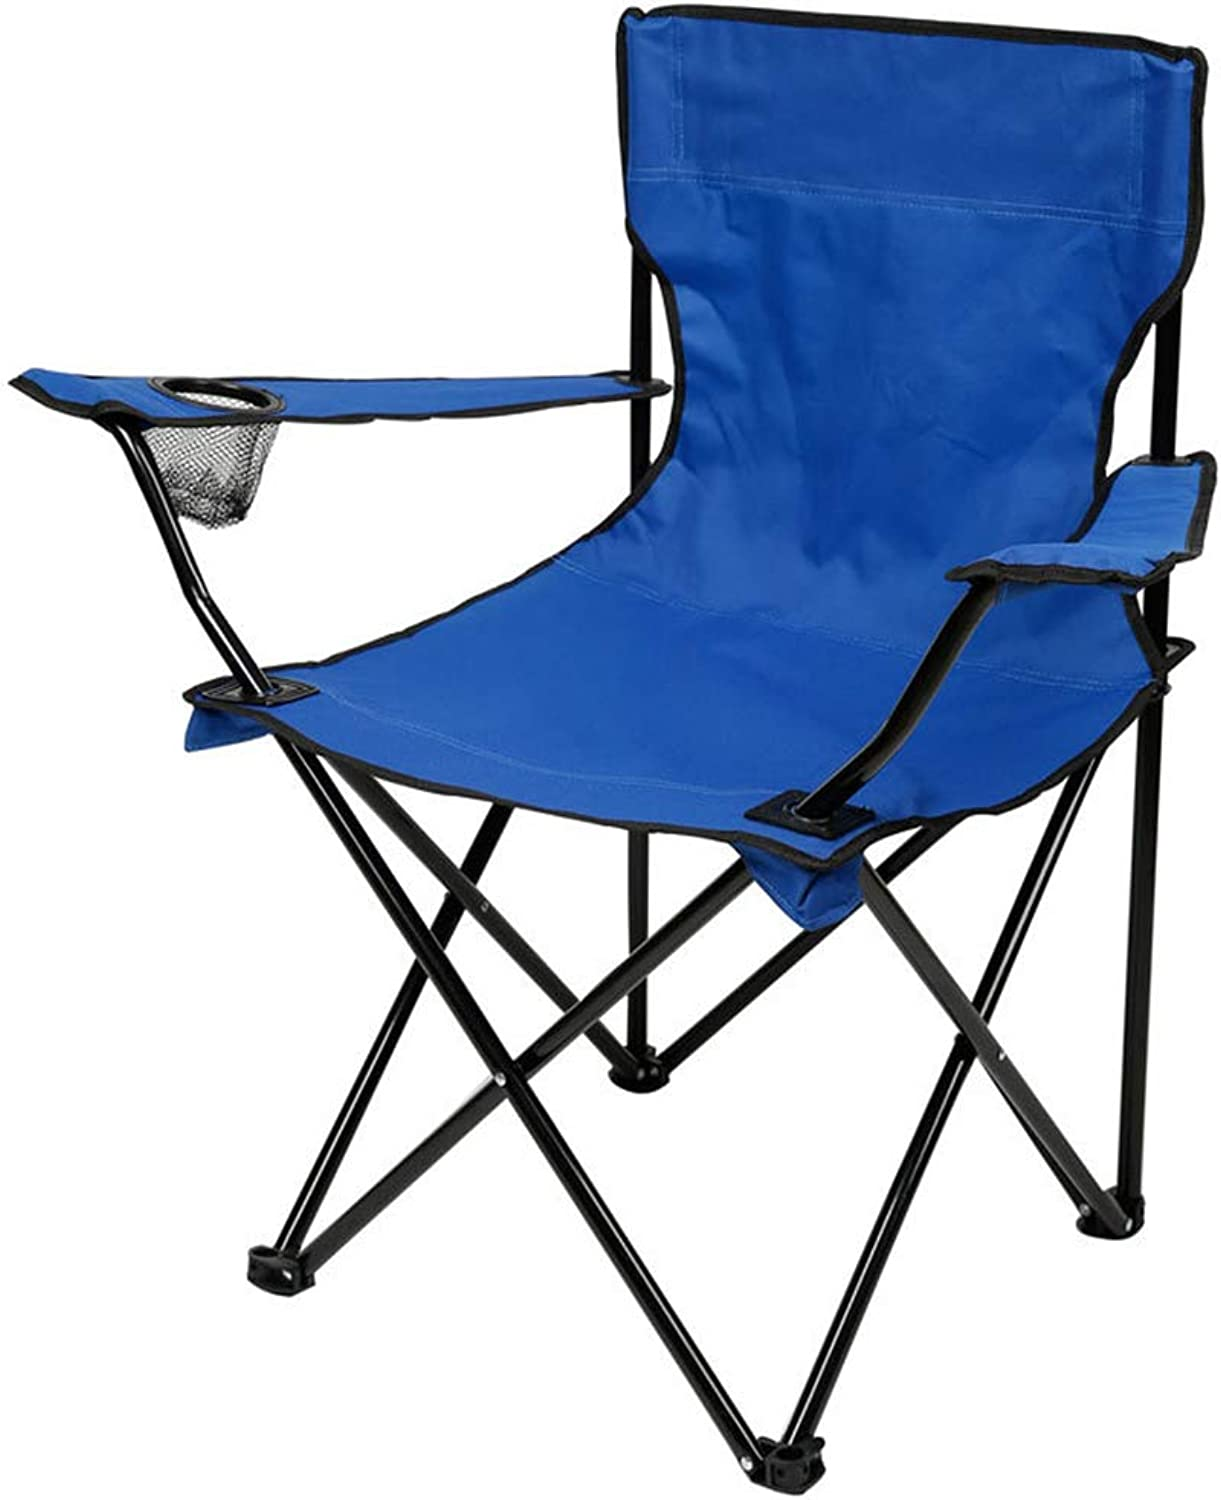 Portable Compact Folding Camping Chair for Backpacking Hiking Picnic Beach